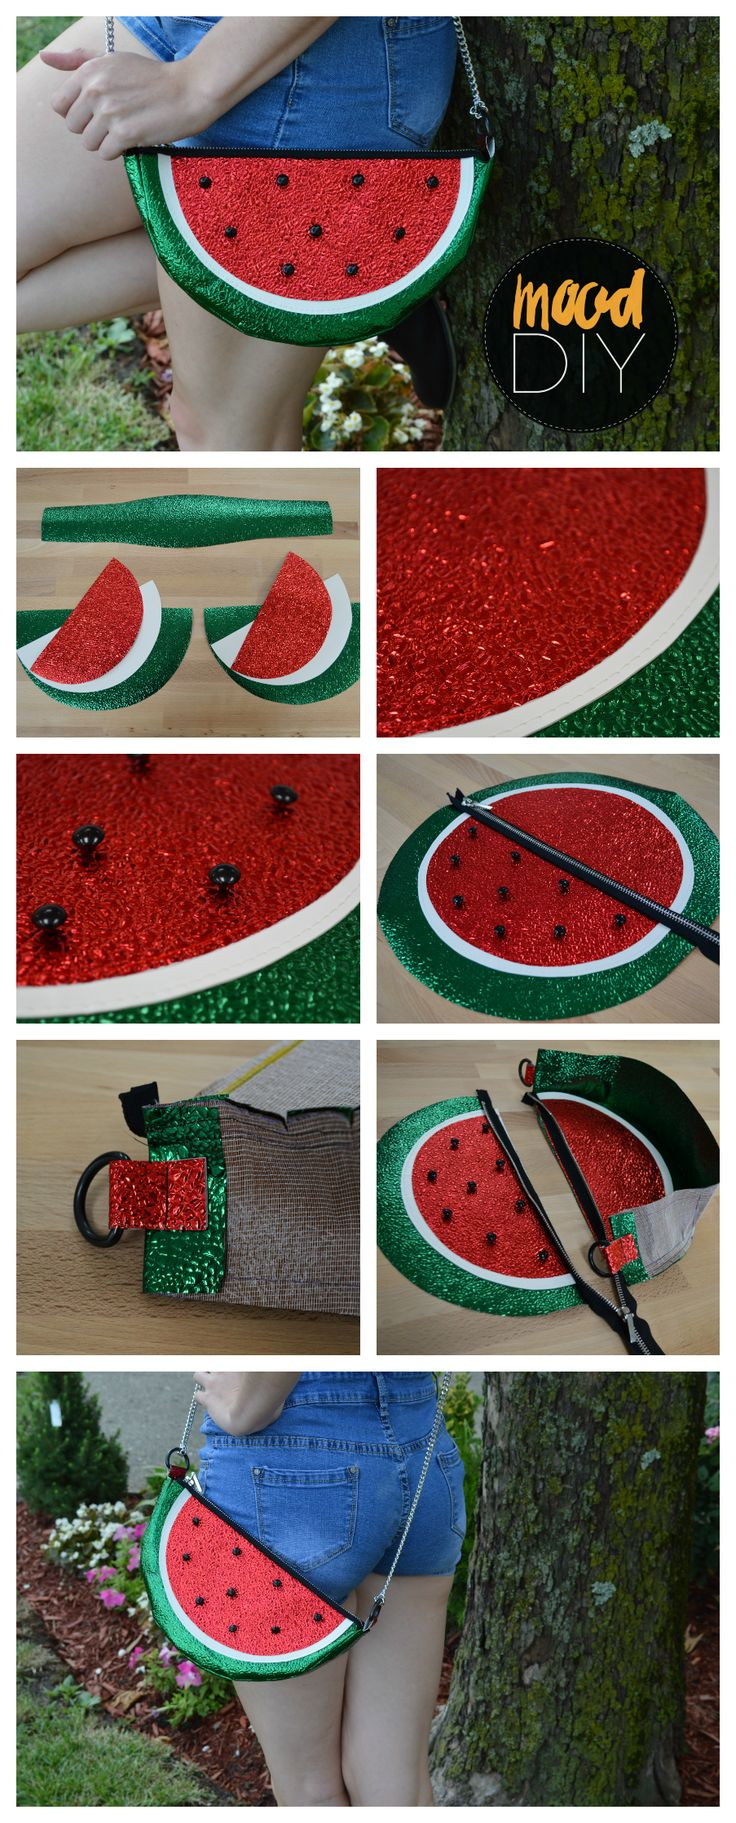 Mood DIY: How to Sew a Watermelon Purse | Fruit prints and accessories have been one of the cutest trends this summer, so today I made the shiniest watermelon purse on Earth. I love it.